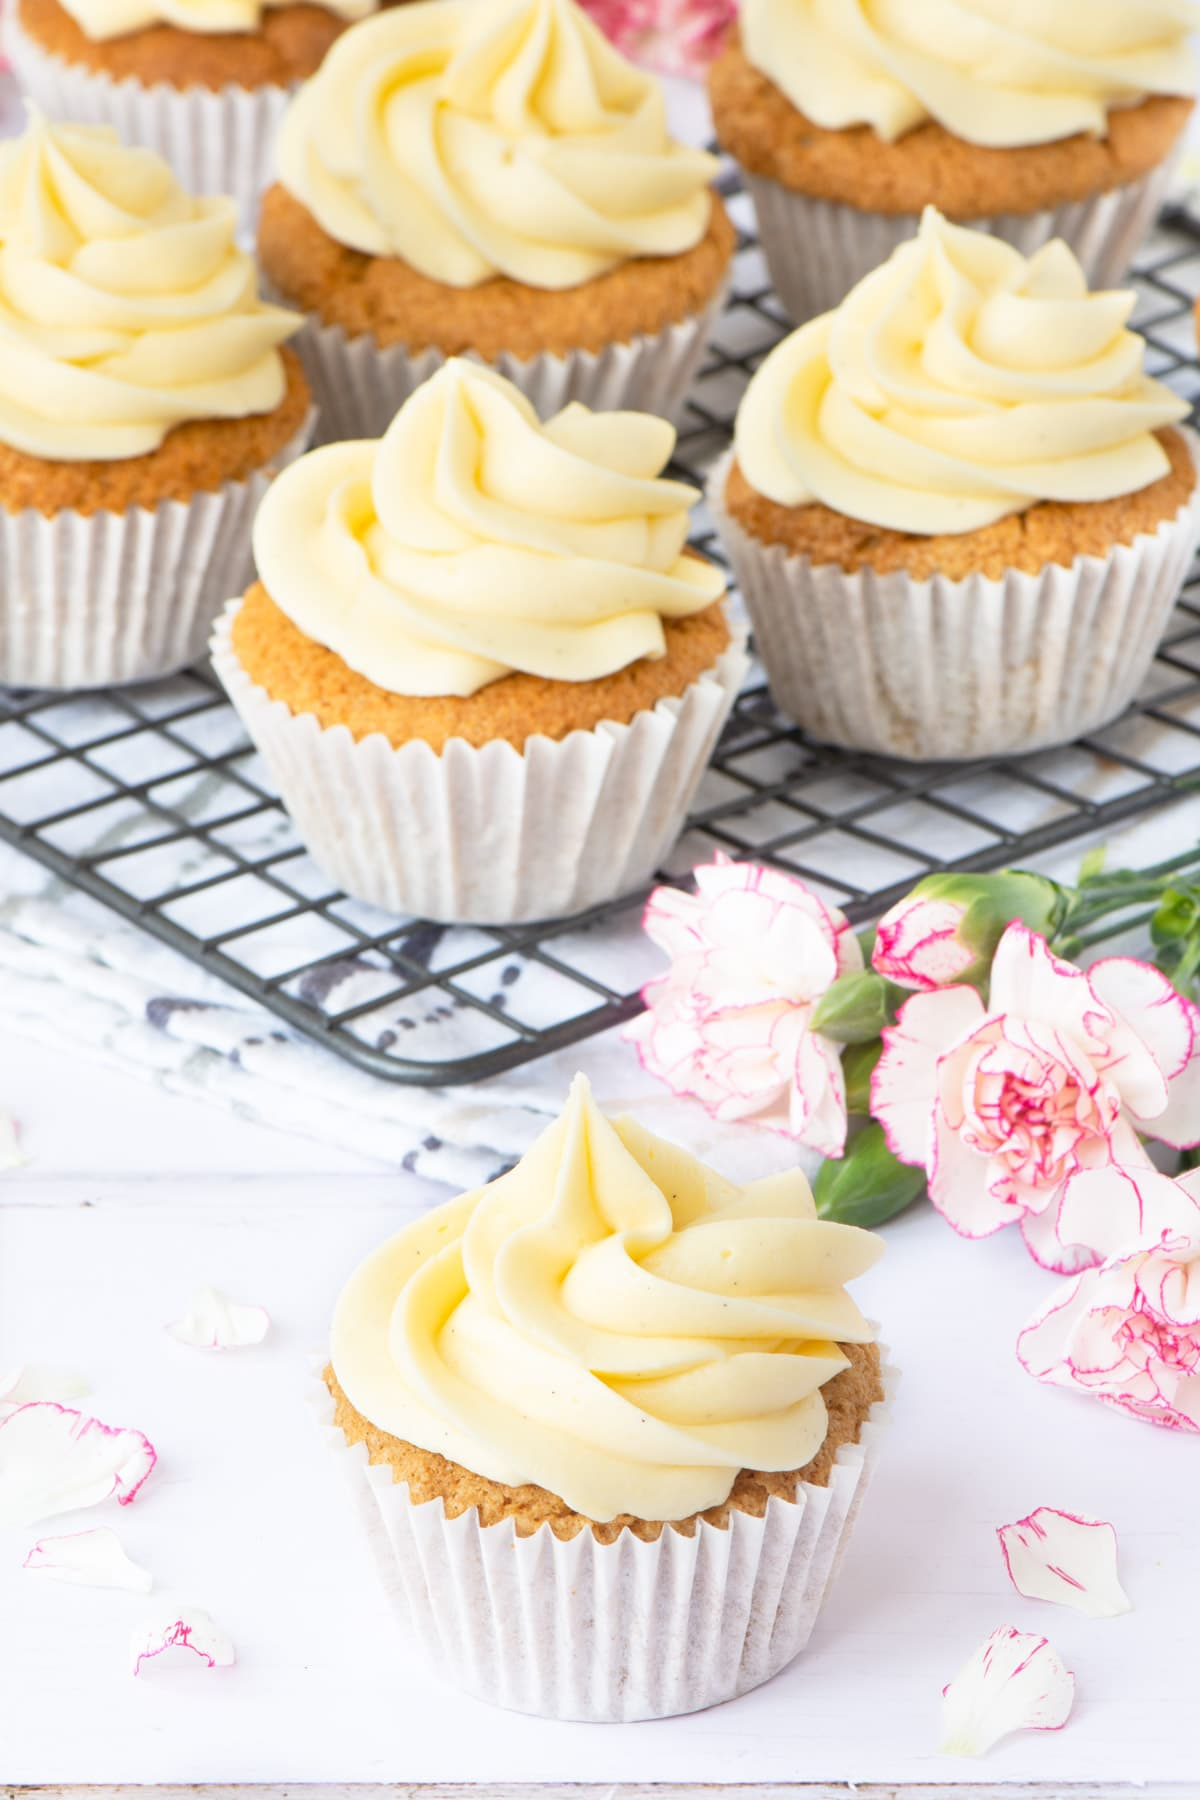 These vegan vanilla cupcakes are easy to make and taste delicious. No one would guess that they're egg and dairy-free.